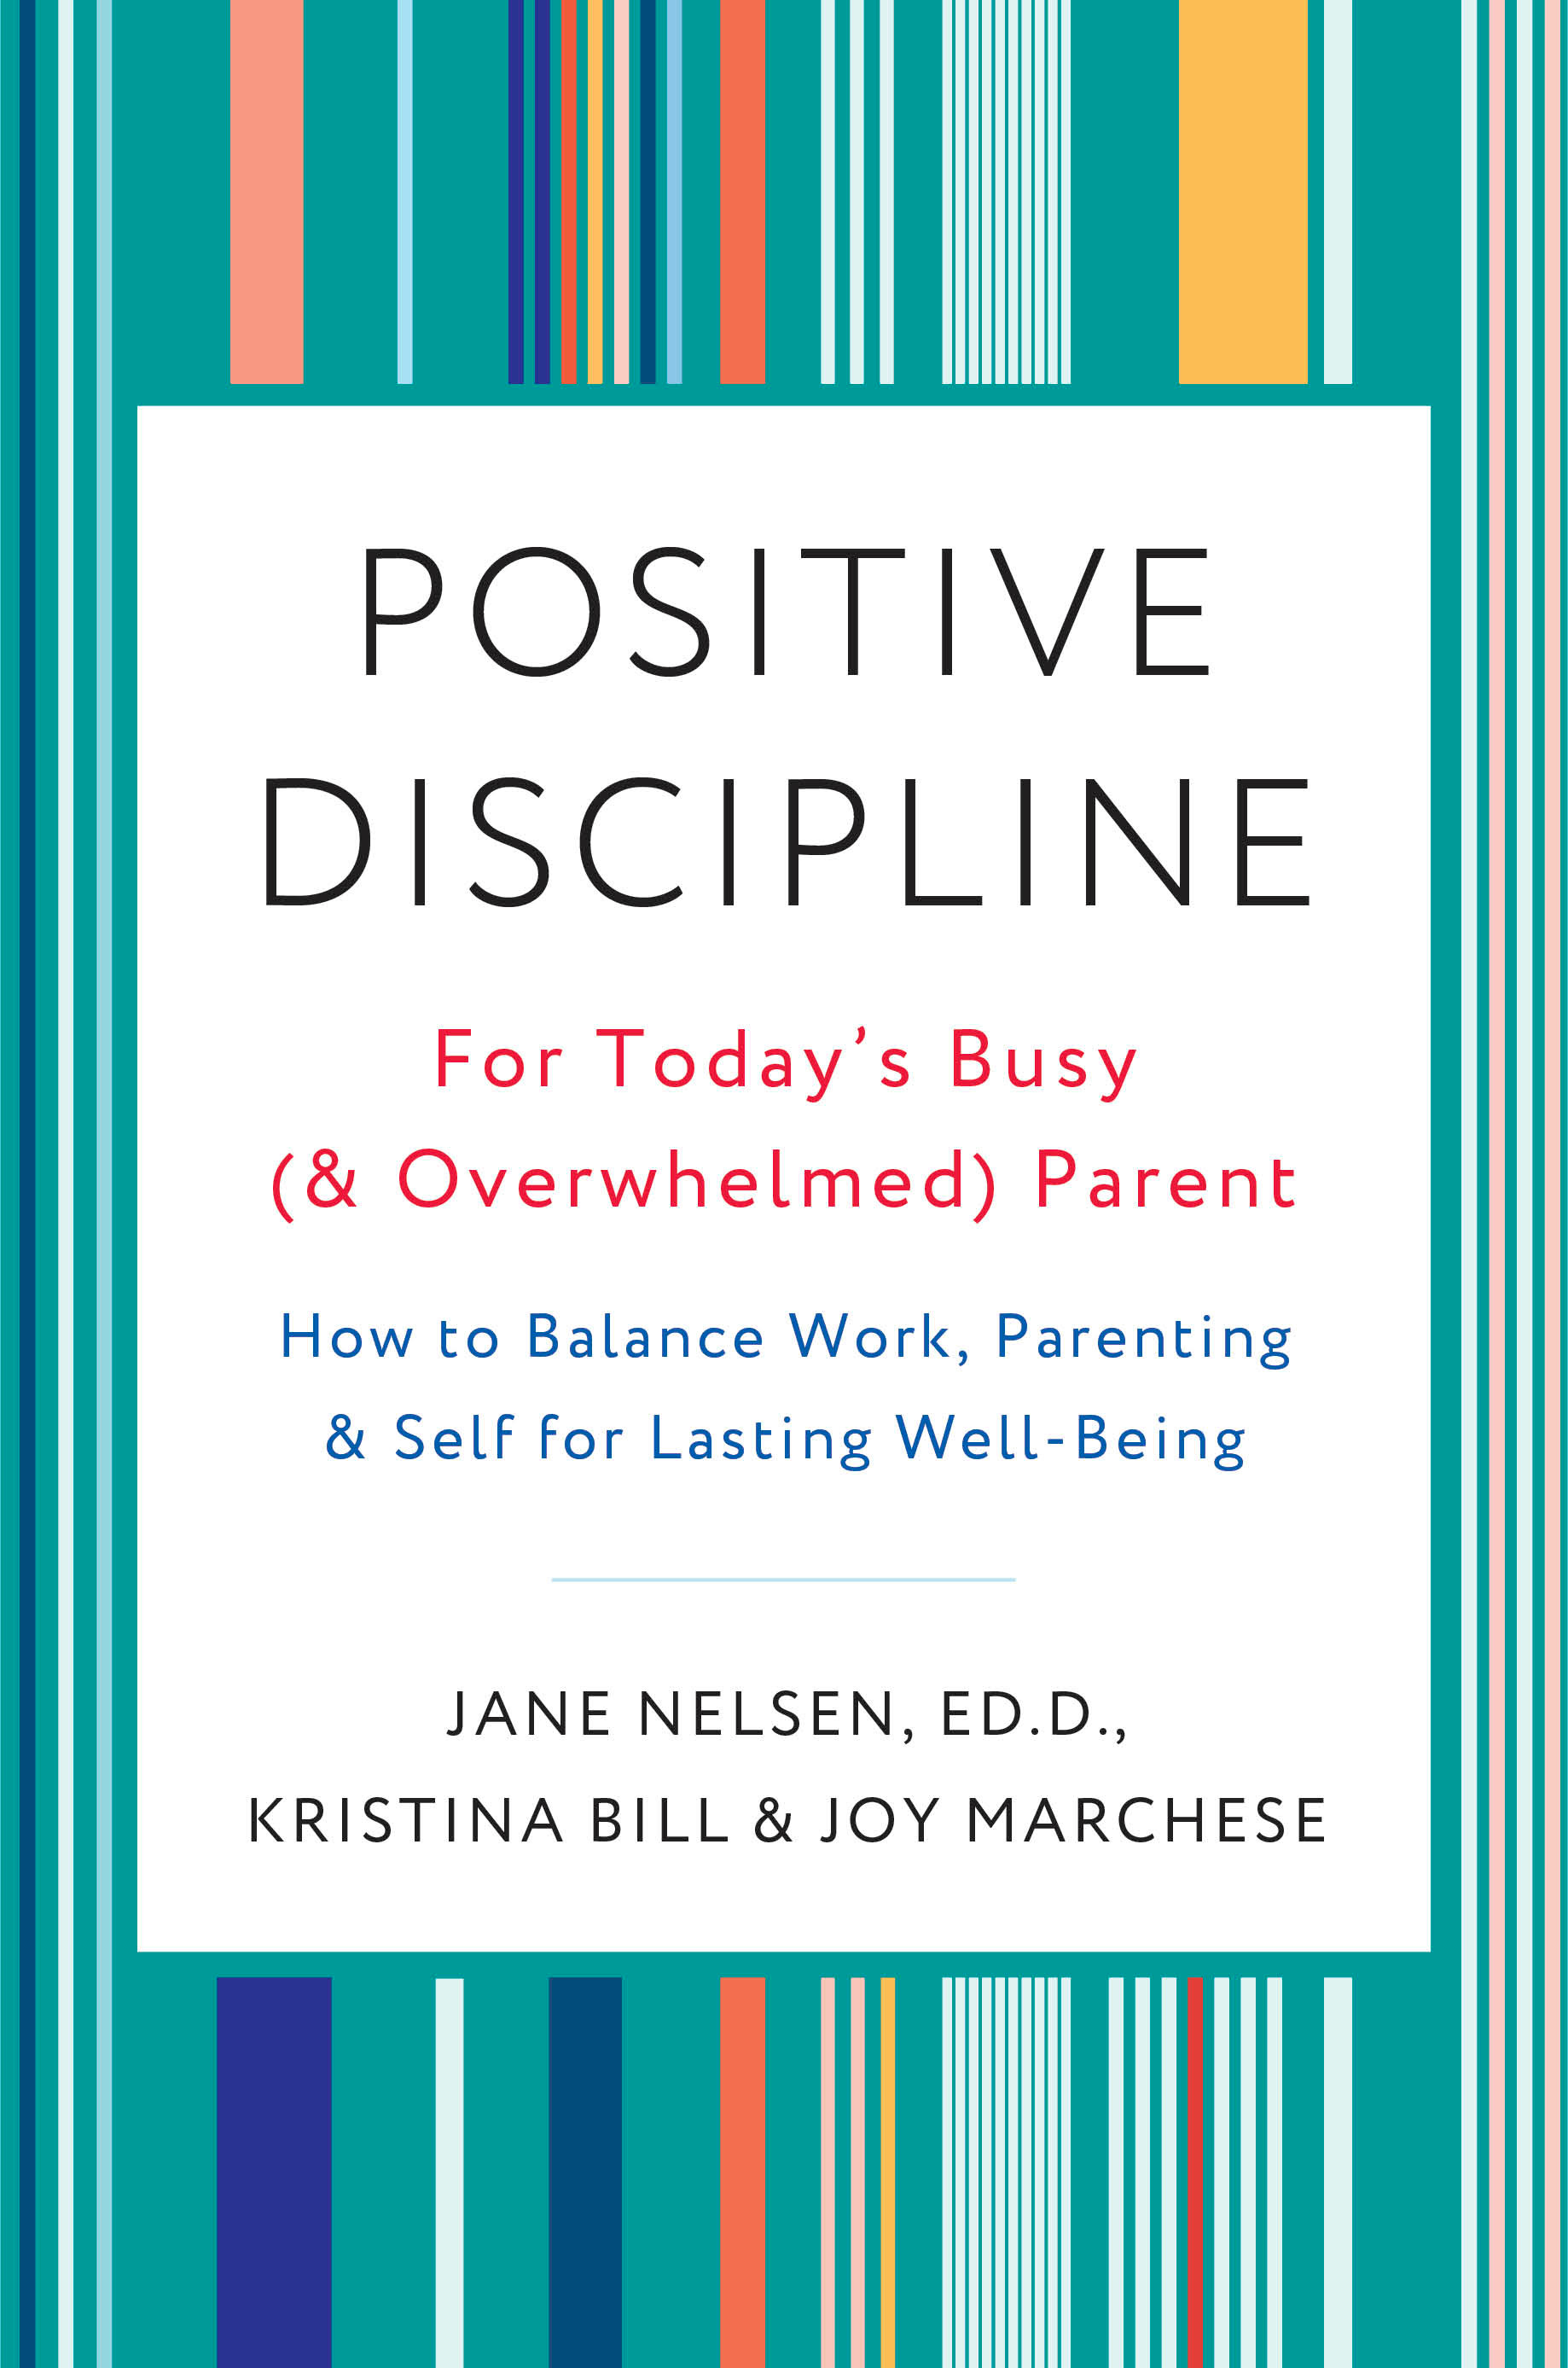 PD for Busy Parent Cover.jpg